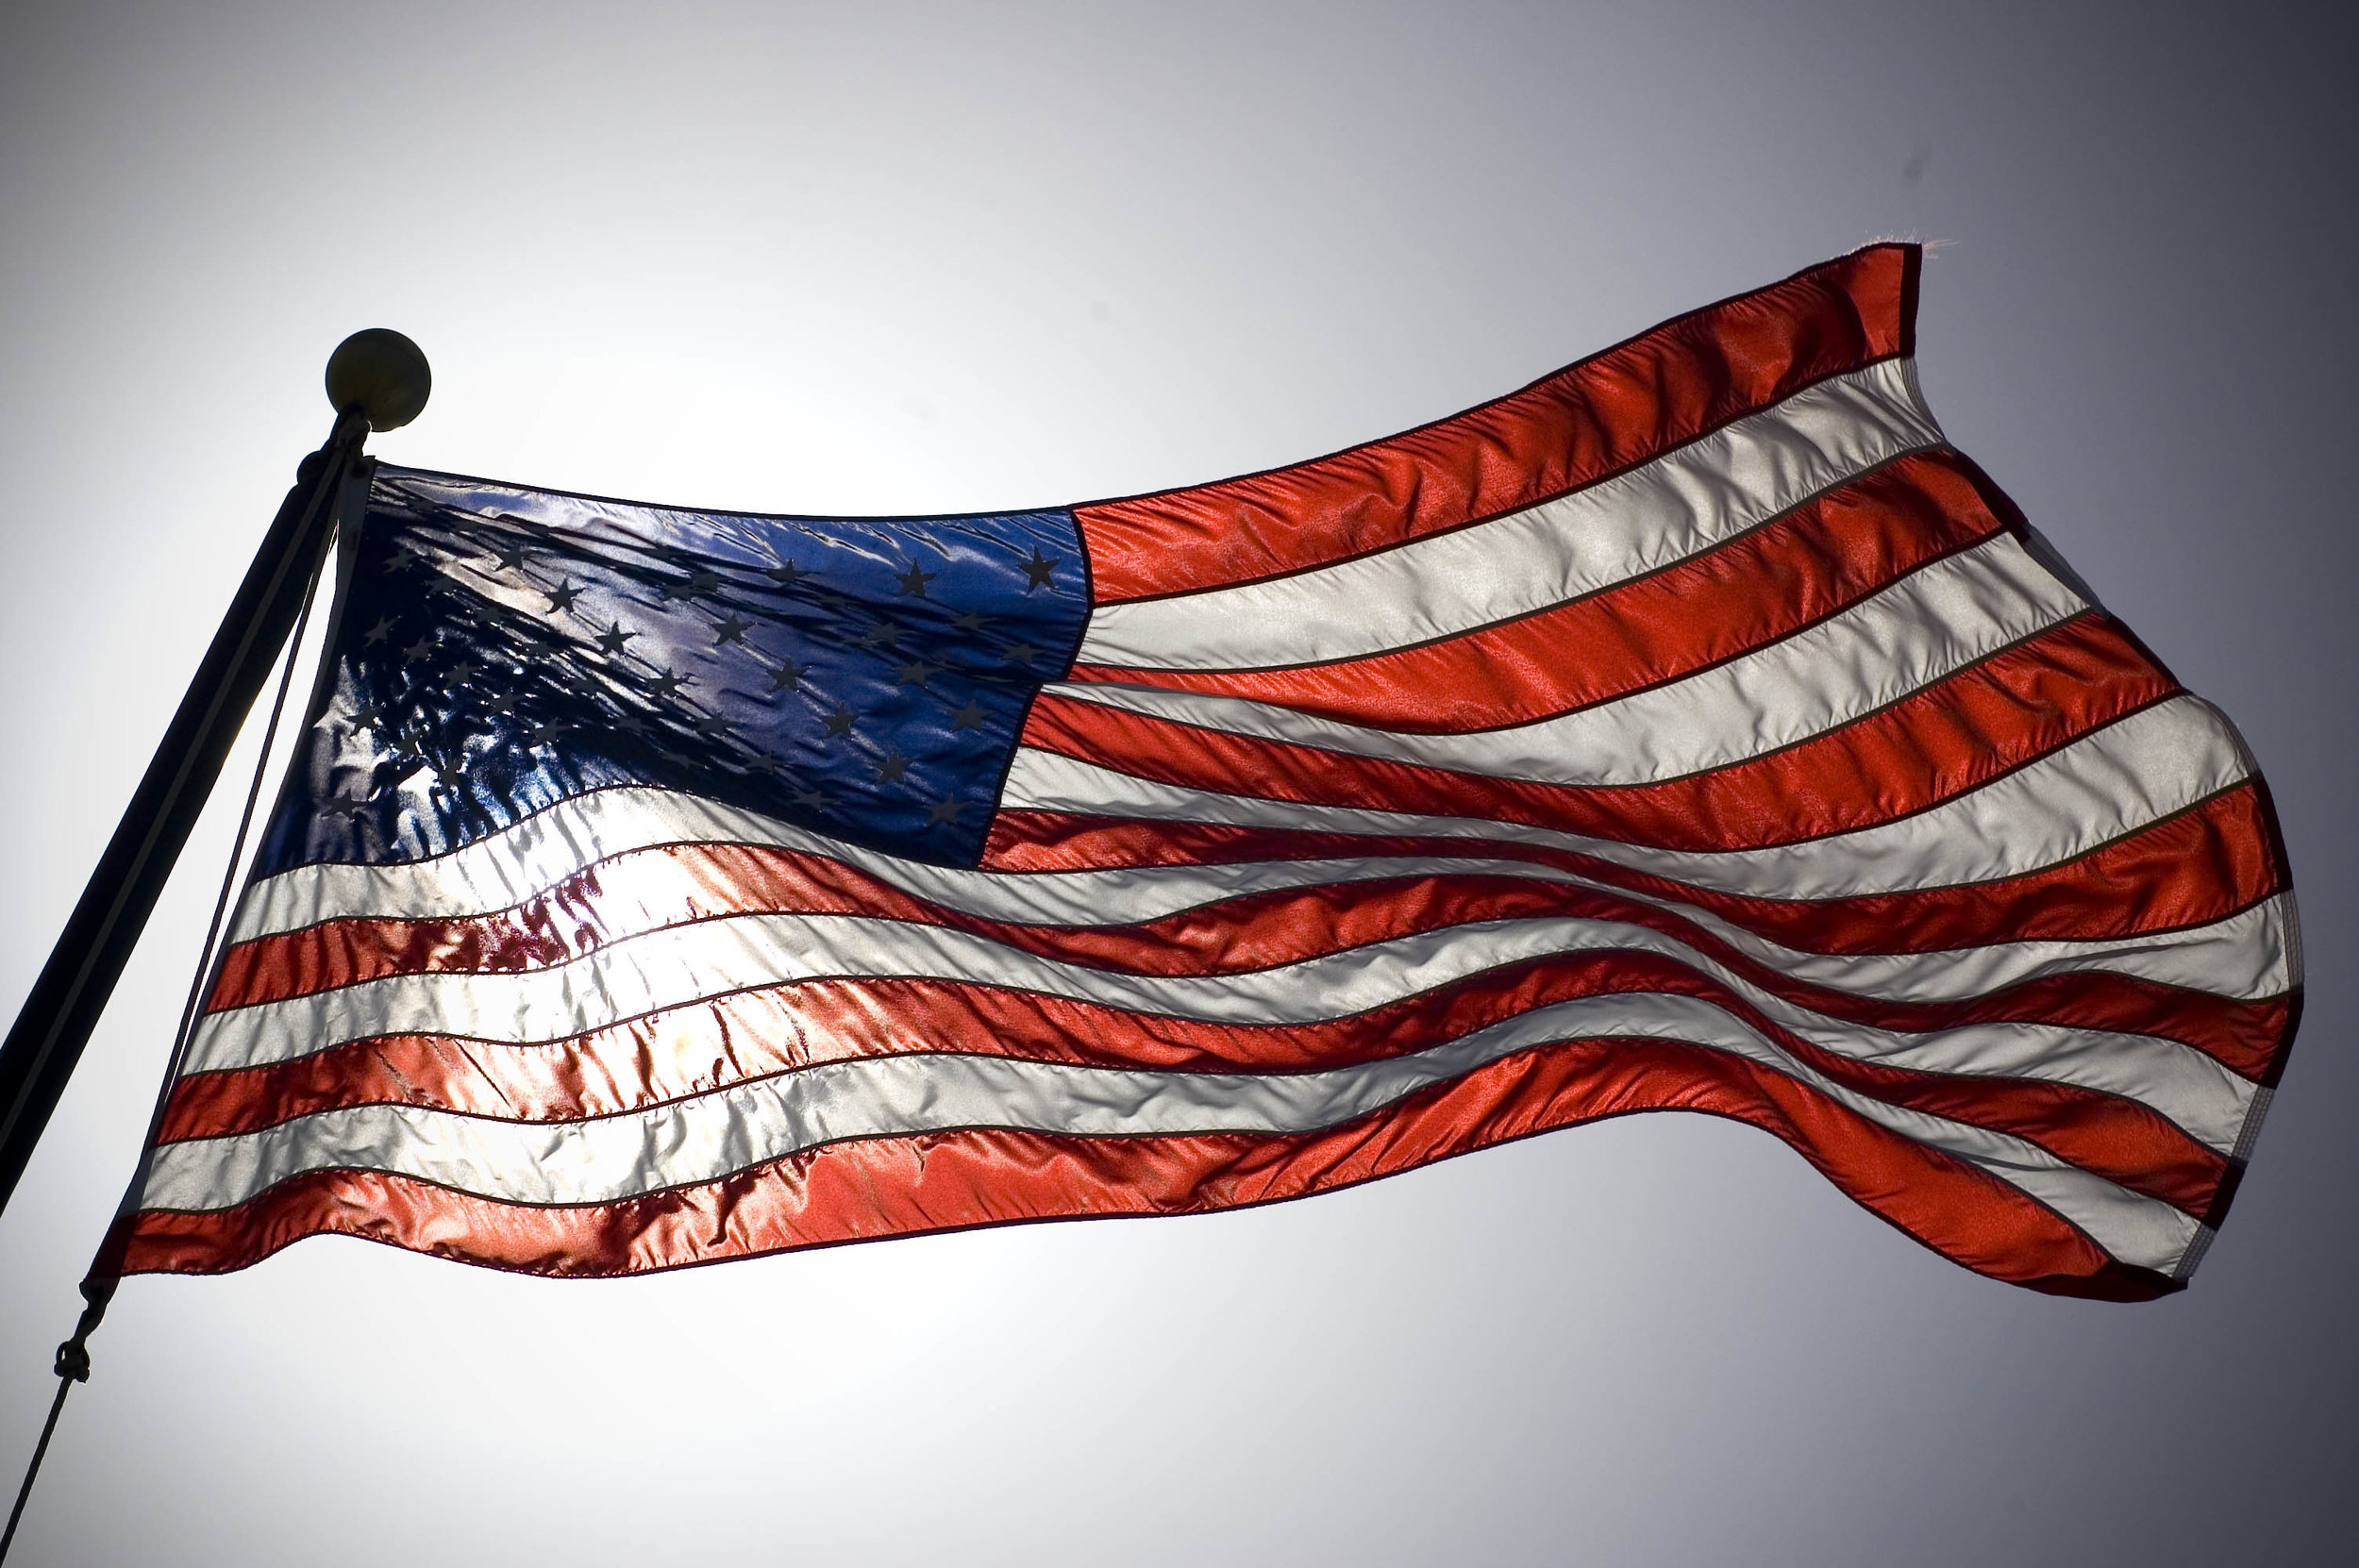 10% OFF HOME INSPECTIONFORALL VETERANS - thank you for your service!